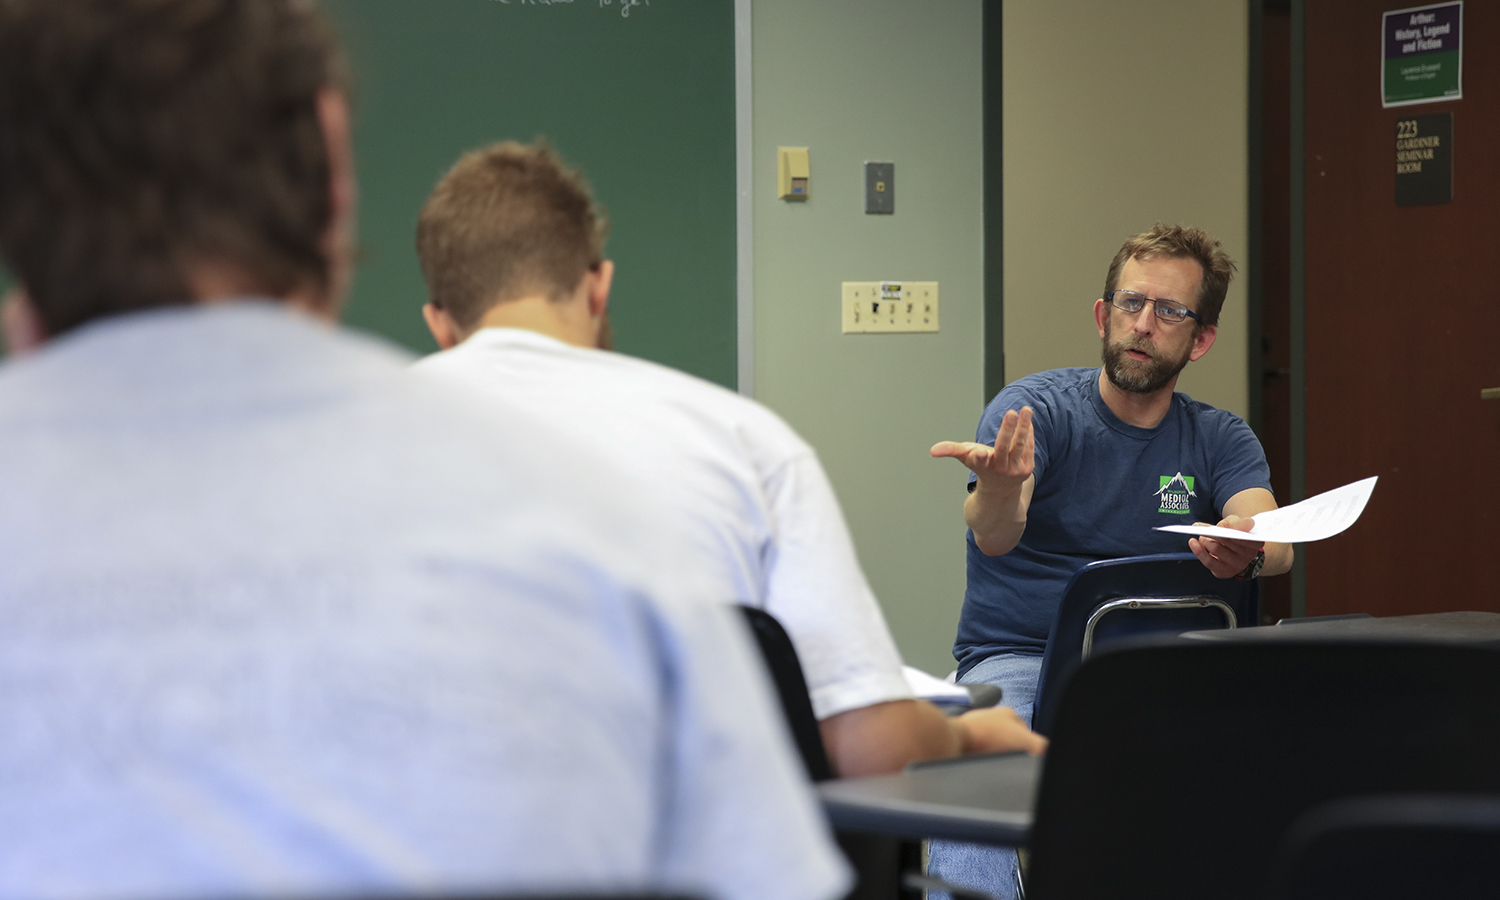 """Assistant Professor Department of Mathematics and Computer Science John Lasseter talks with students as part of his Summer Session course """"Mathematics for Informed Citizenship"""" in Gulick Hall."""